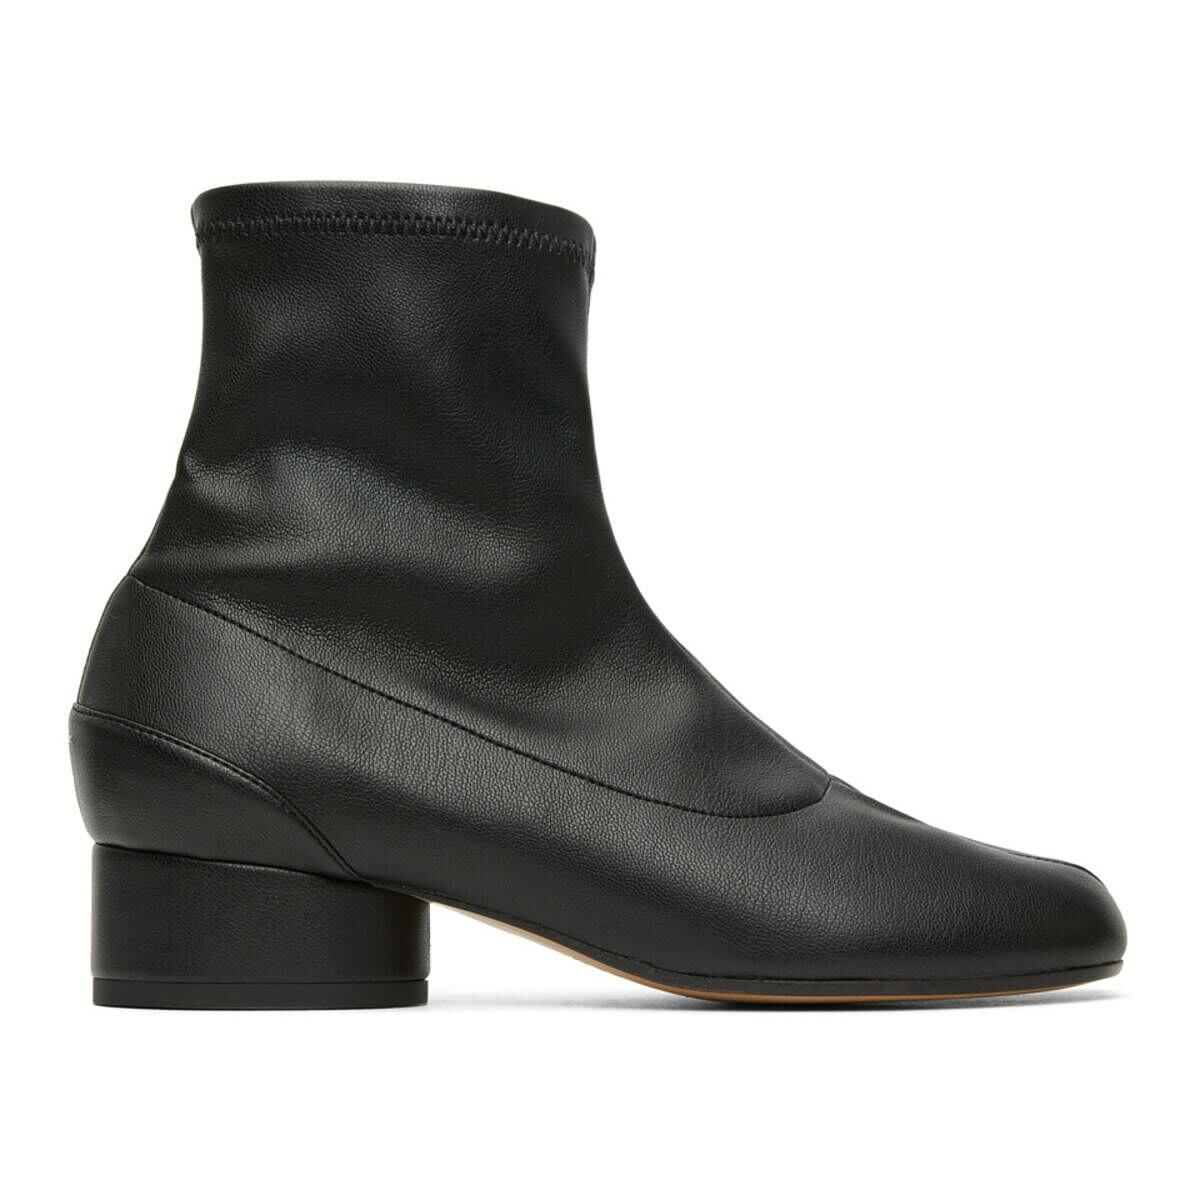 Maison Margiela Black Eco Leather Tabi Sock Boots Ssense USA WOMEN Women SHOES Womens ANKLE BOOTS